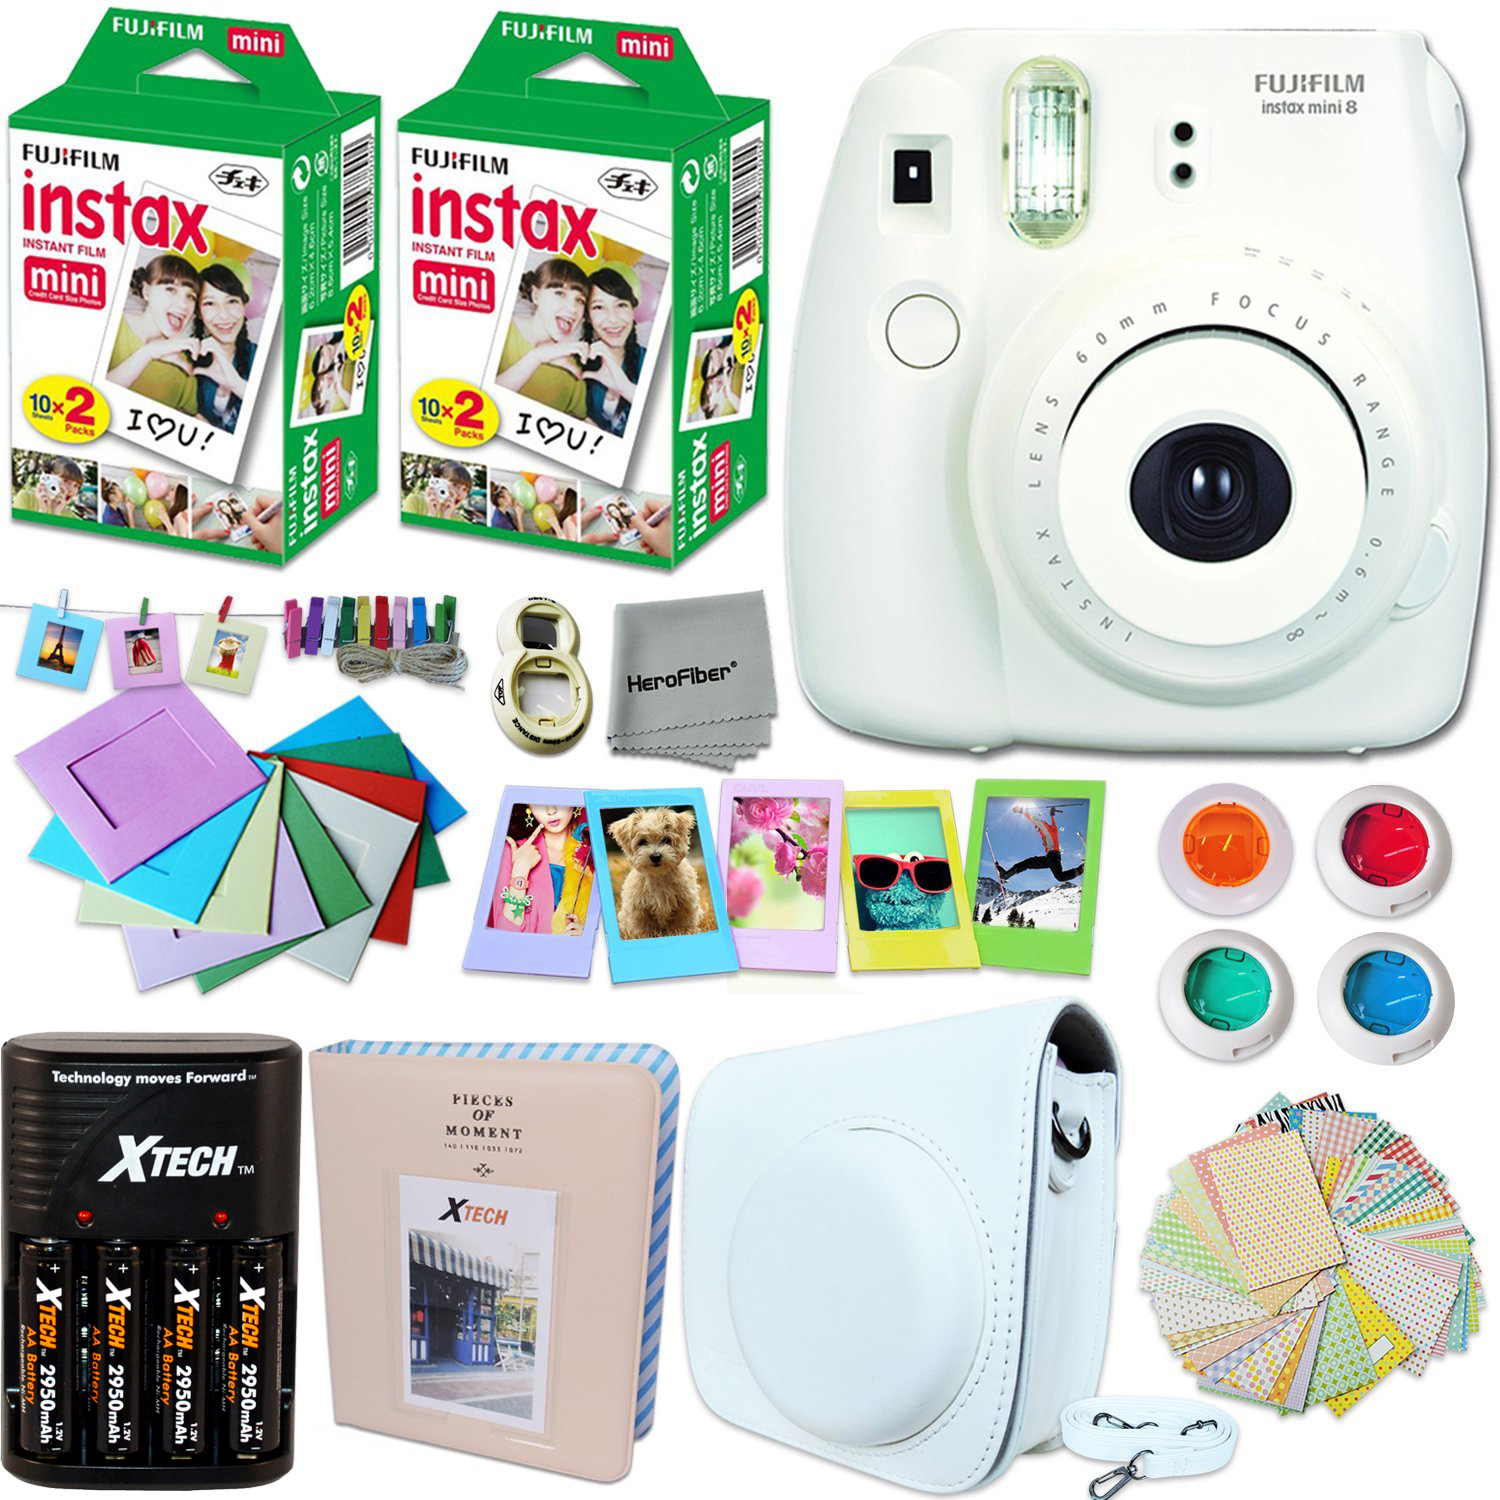 FujiFilm Instax Mini 8 Camera WHITE + Accessories KIT for Fujifilm Instax Mini 8 Camera includes: 40 Instax Film + Custom Case + 4 AA Rechargeable Batteries + Assorted Frames + Photo Album + MORE